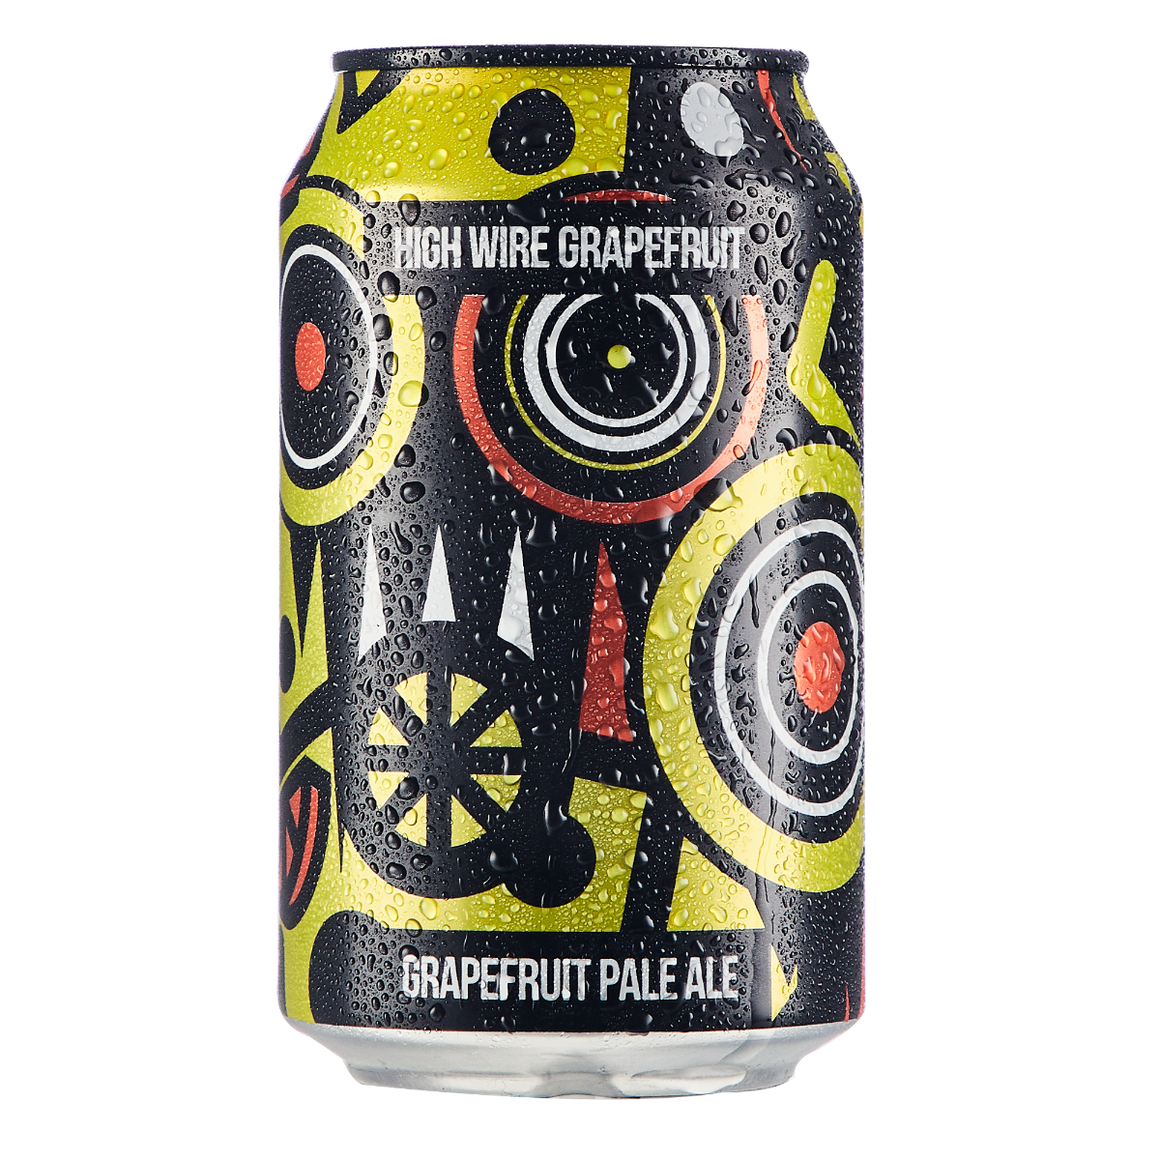 Magic Rock - High Wire Grapefruit - Pale Ale - 330ml Can